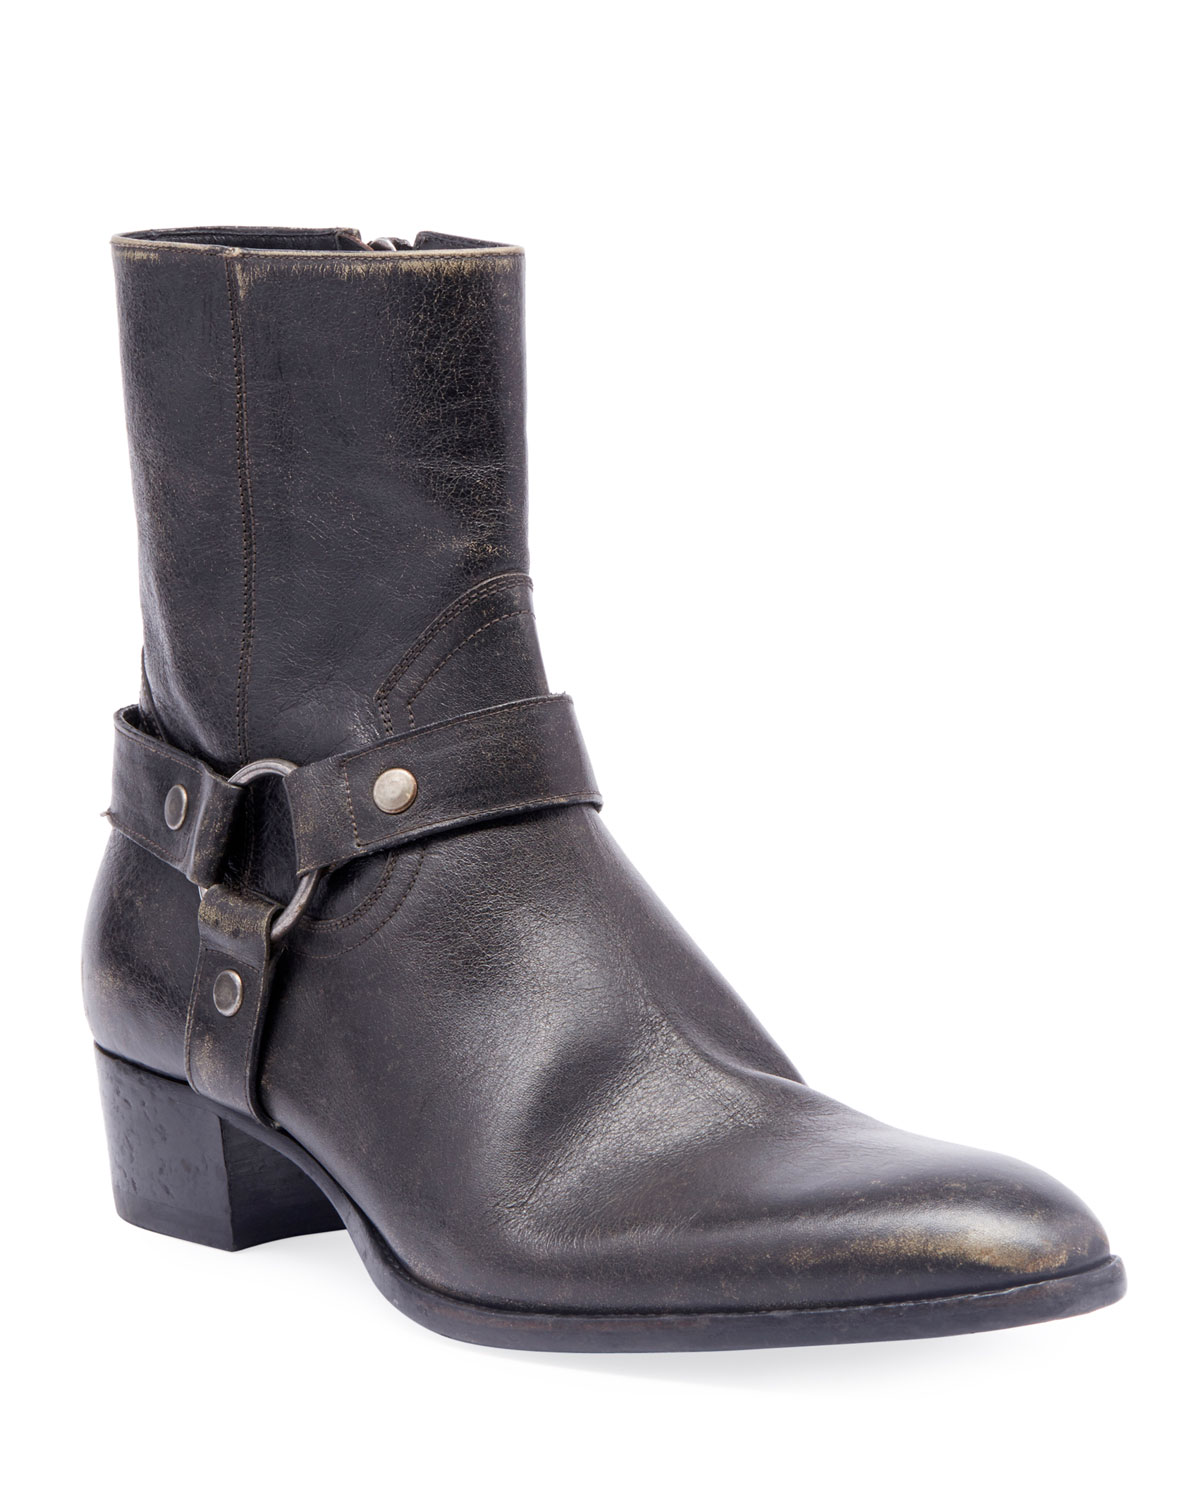 Men's Wyatt Leather Harness Boots